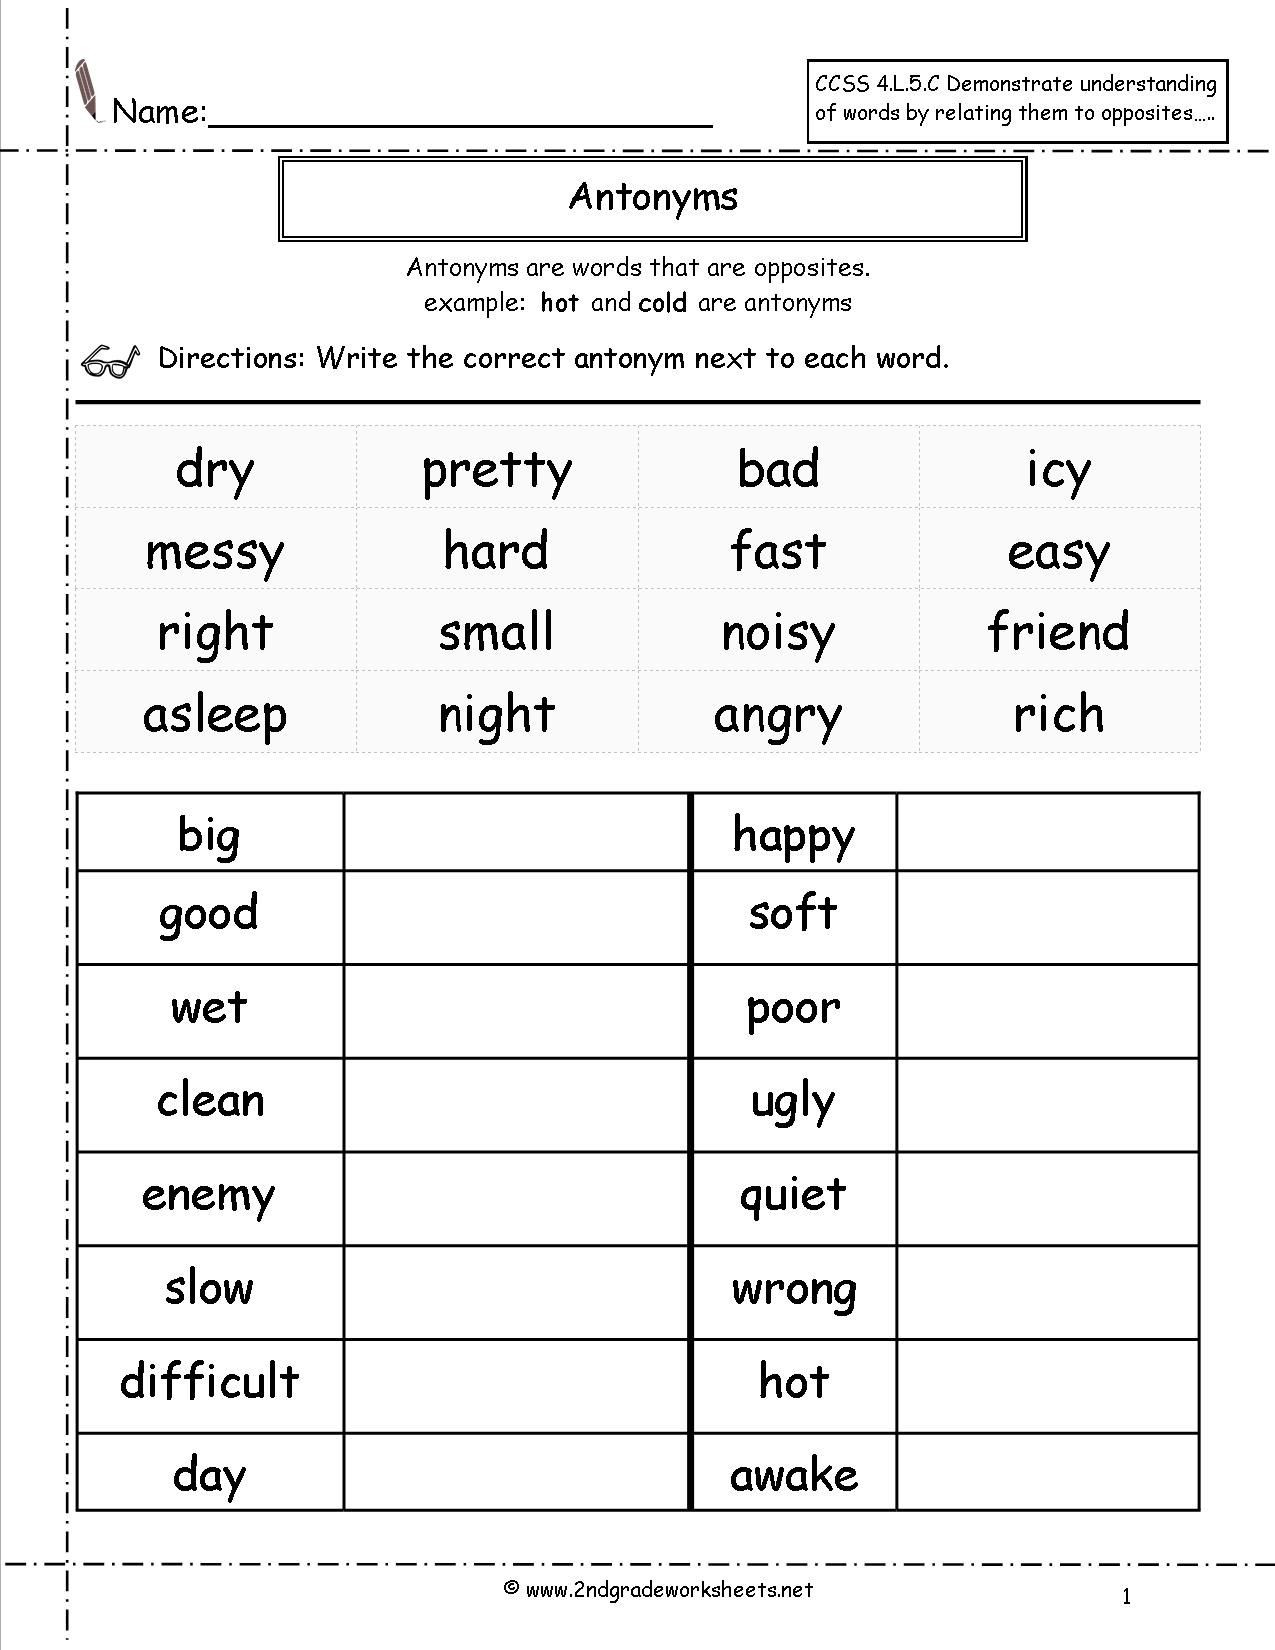 Spelling Worksheets 2nd Graders Antonyms Worksheet